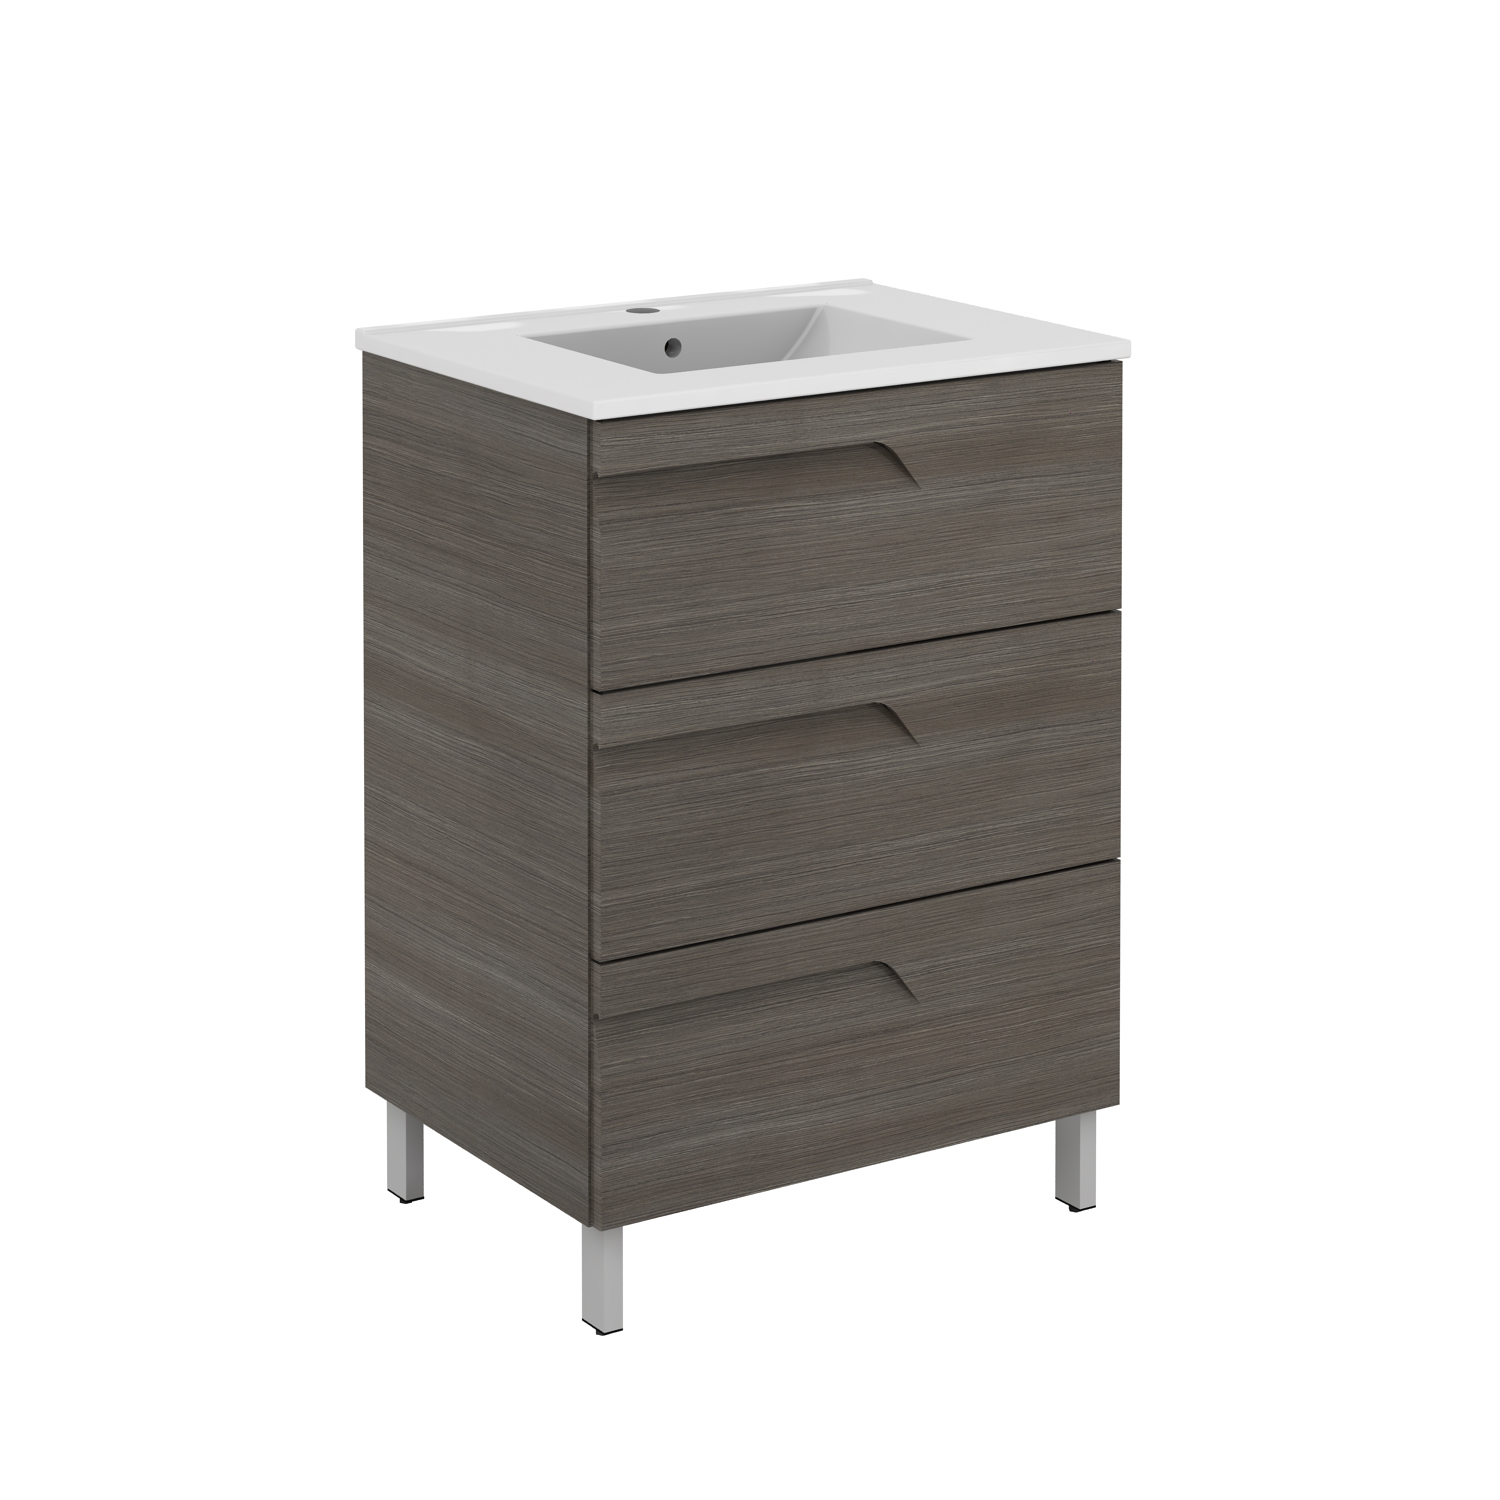 "EVVN23 39ASH A Main - Eviva Vitta 39"" Ashy Modern Bathroom Vanity with White Integrated Porcelain Sink"